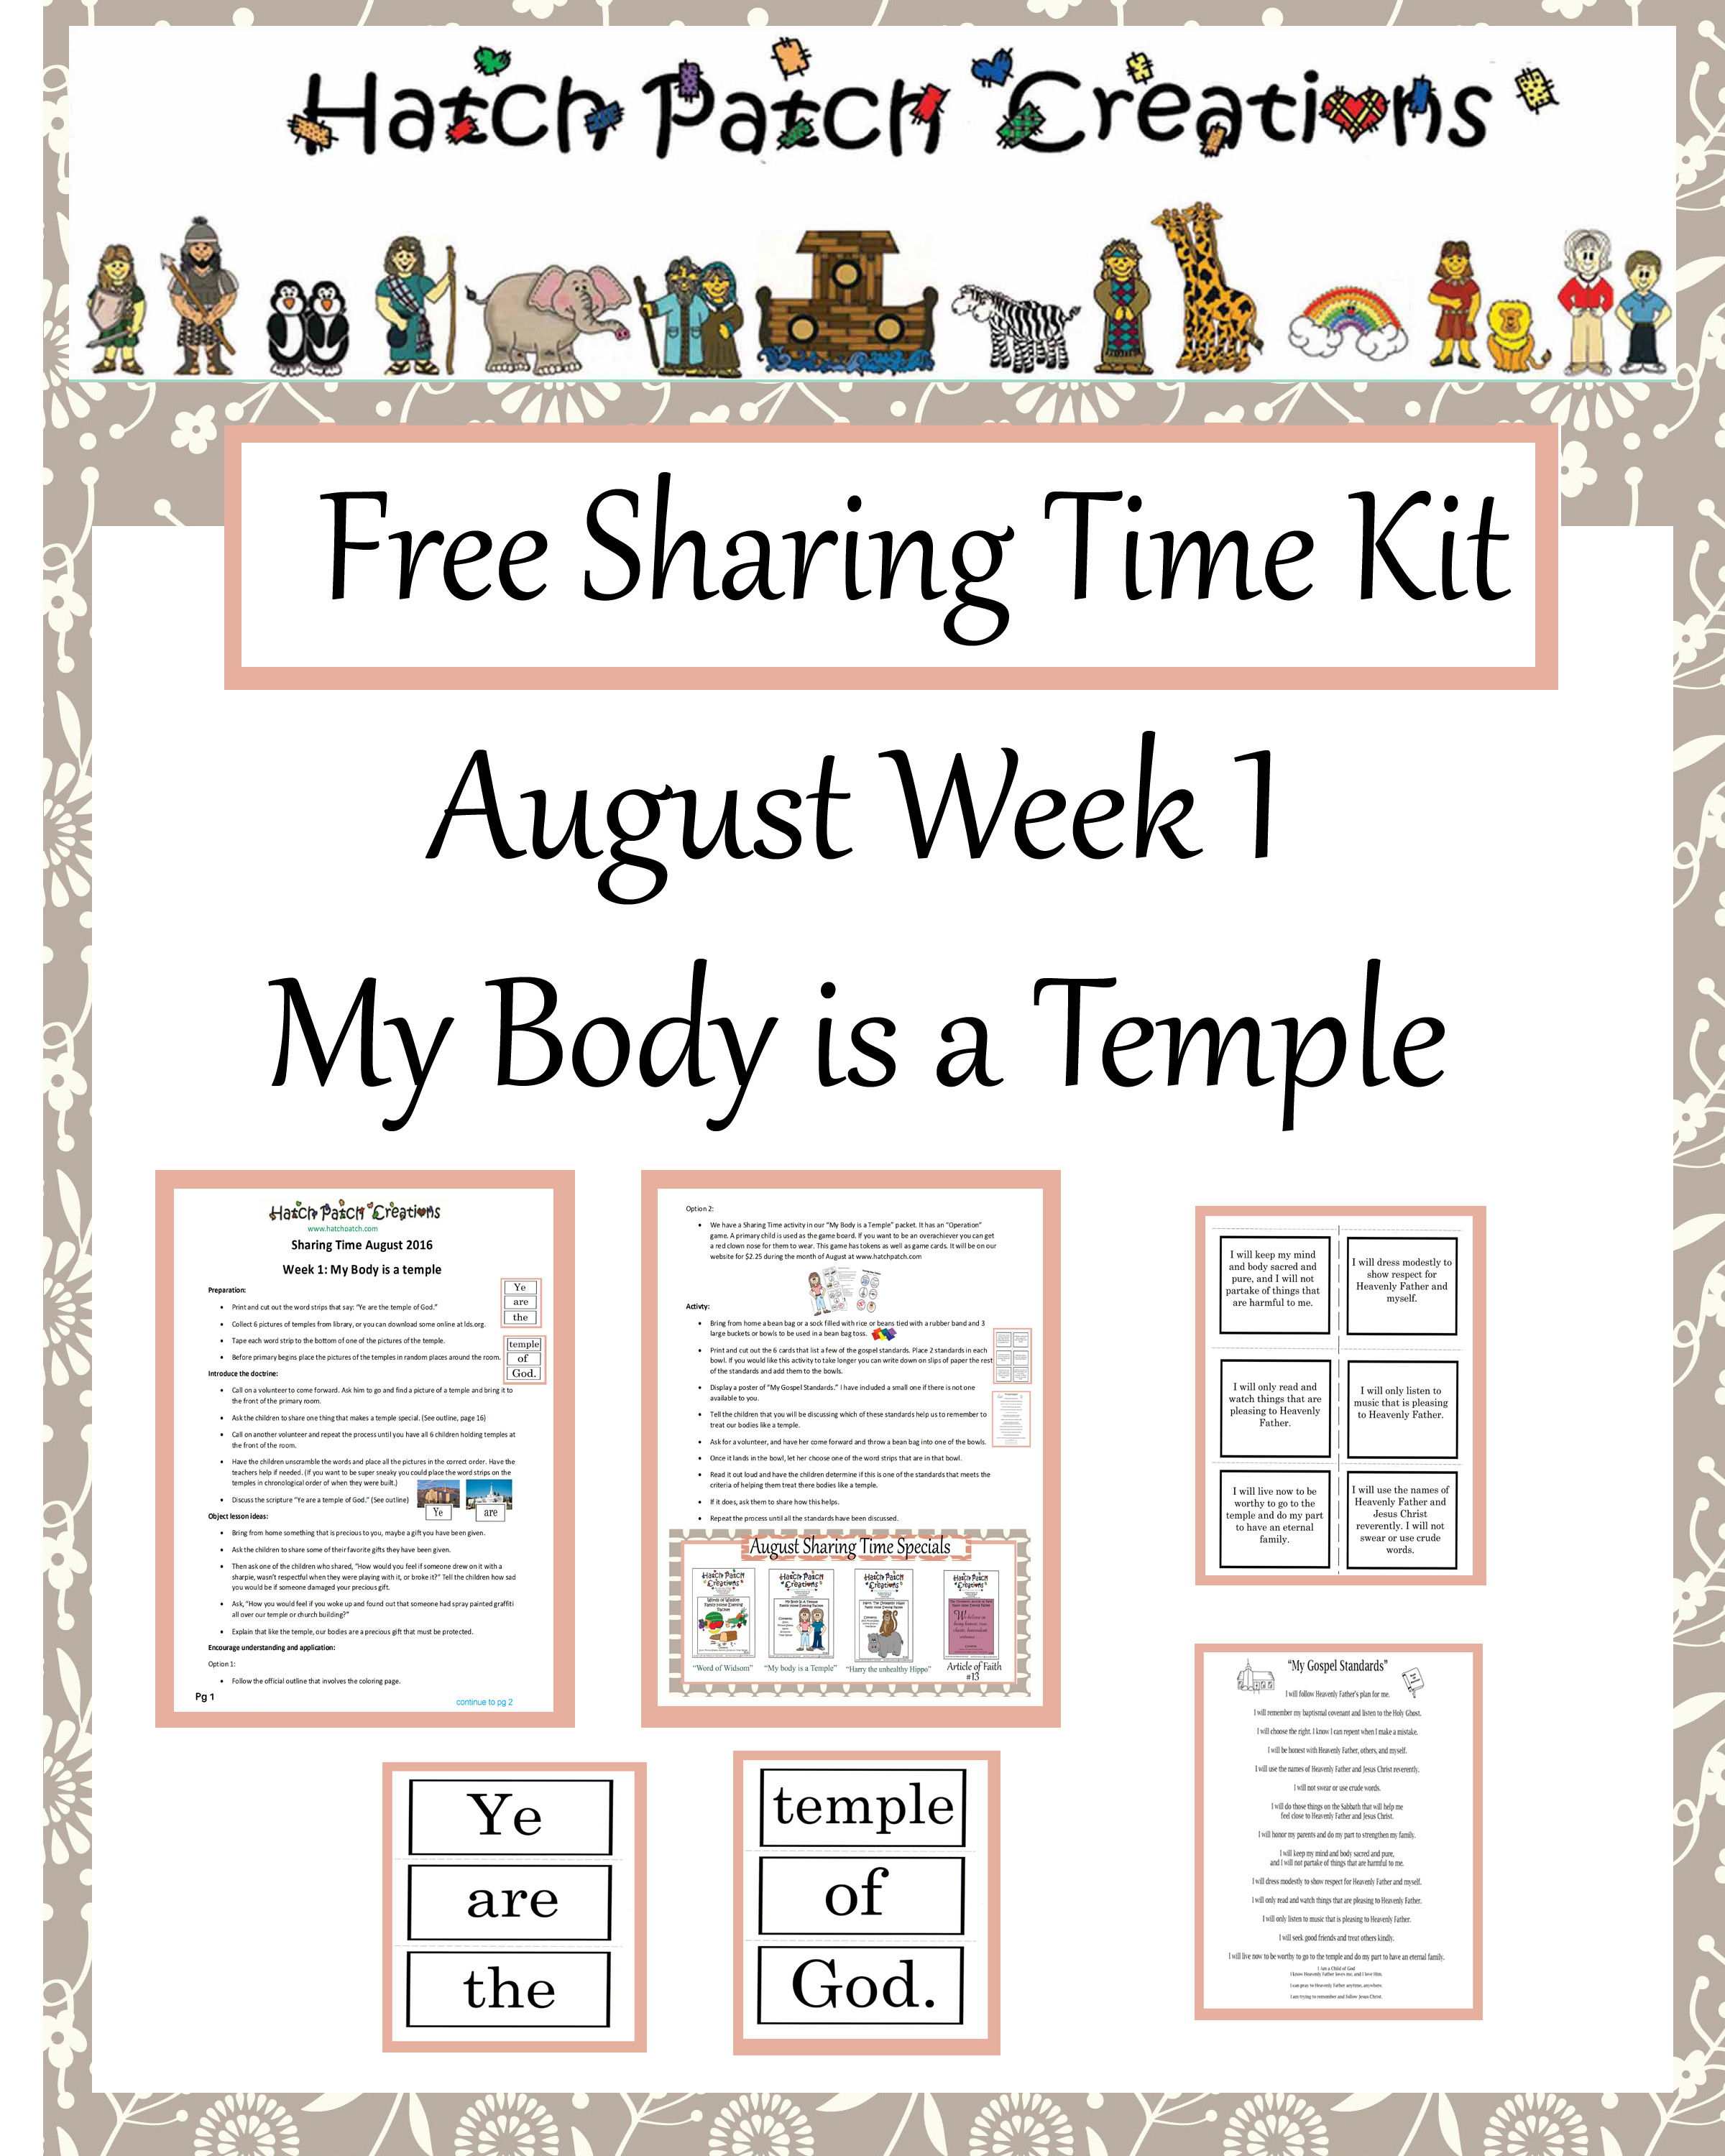 August 2016: My Body Is a Temple of God